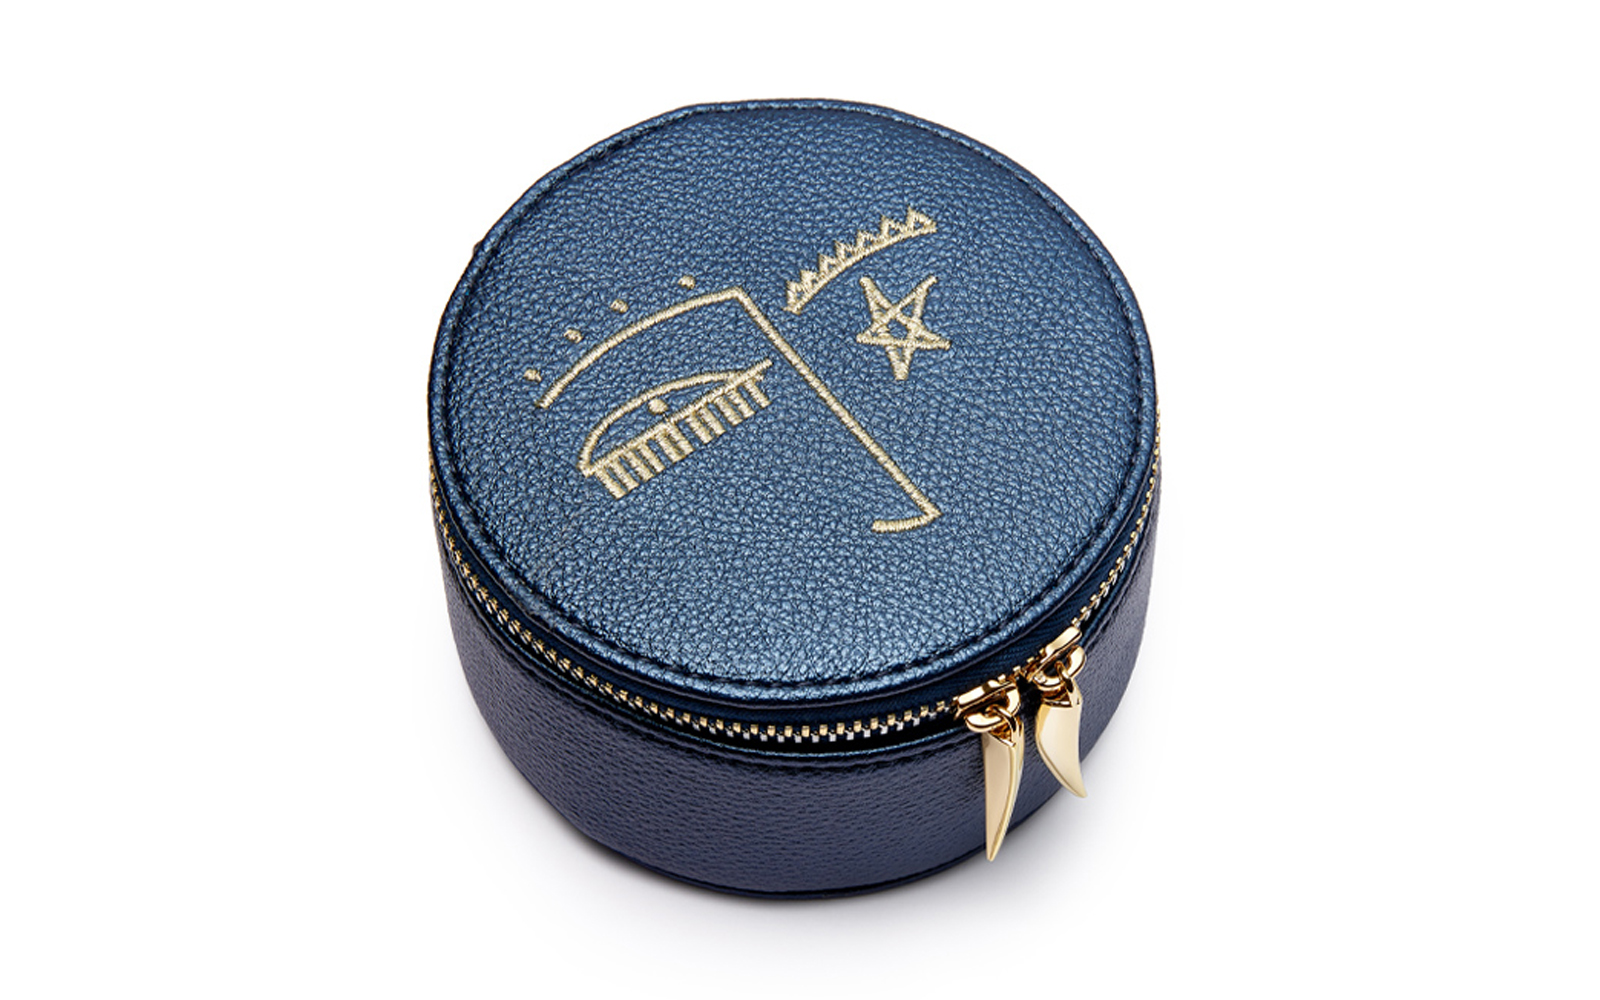 Travel Jewelry Cases For Your Next Trip